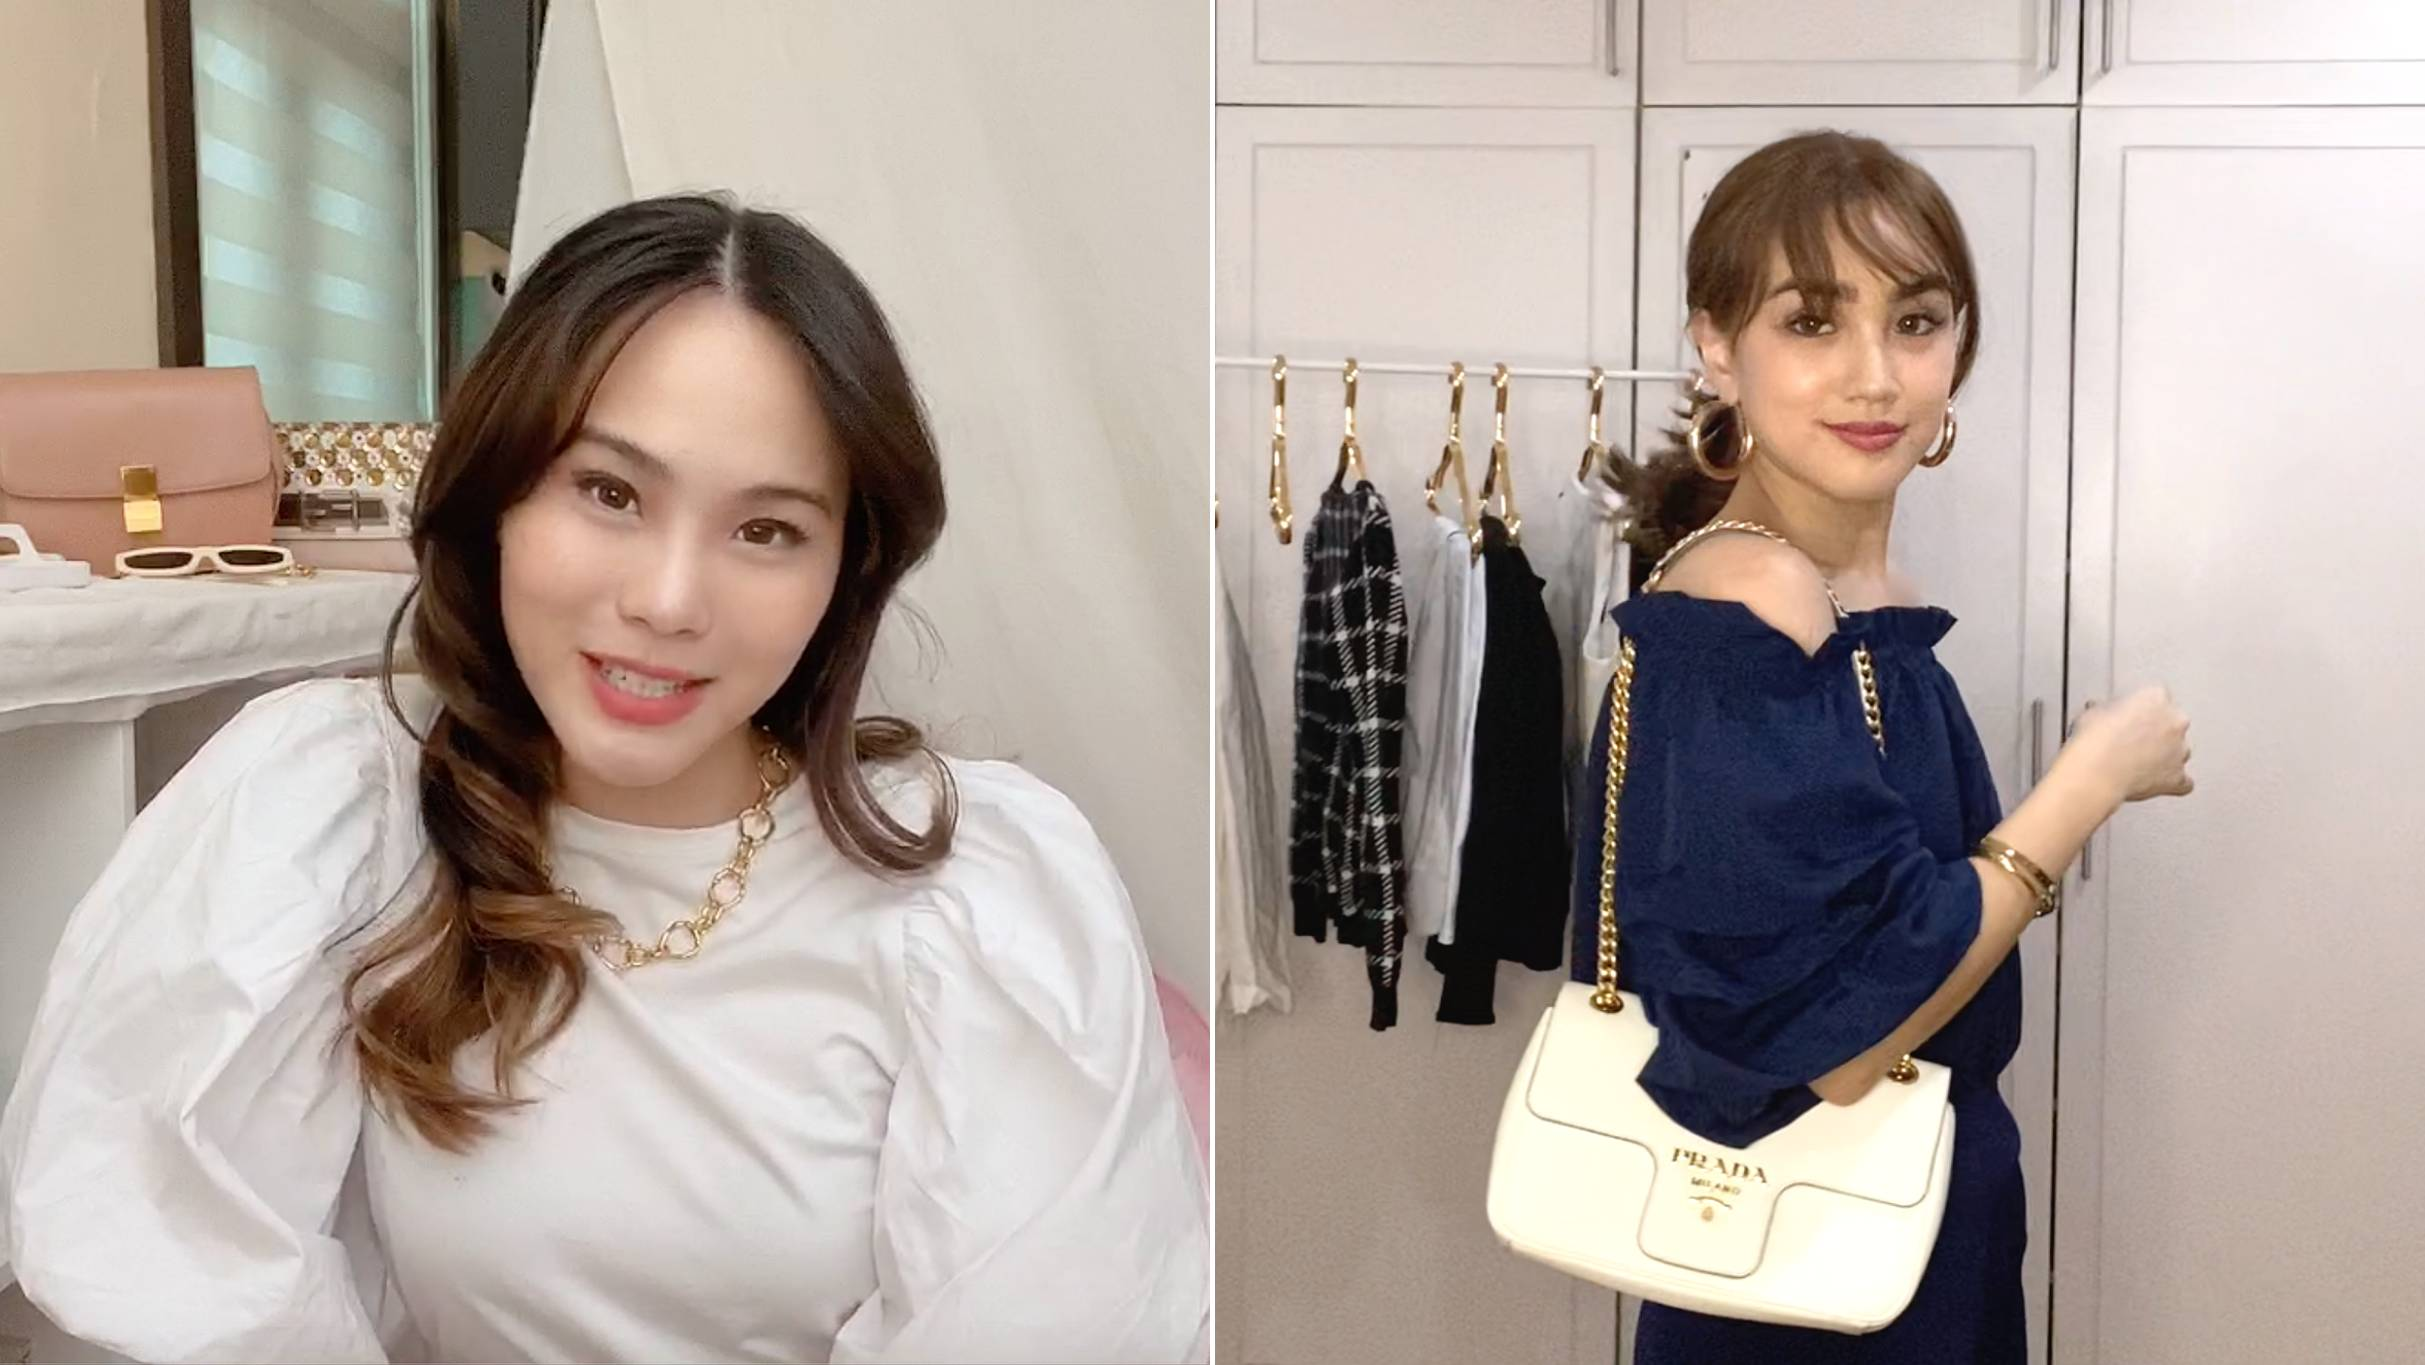 6 Influencer-Approved Ways to Style the Puff-Sleeved Blouse Trend